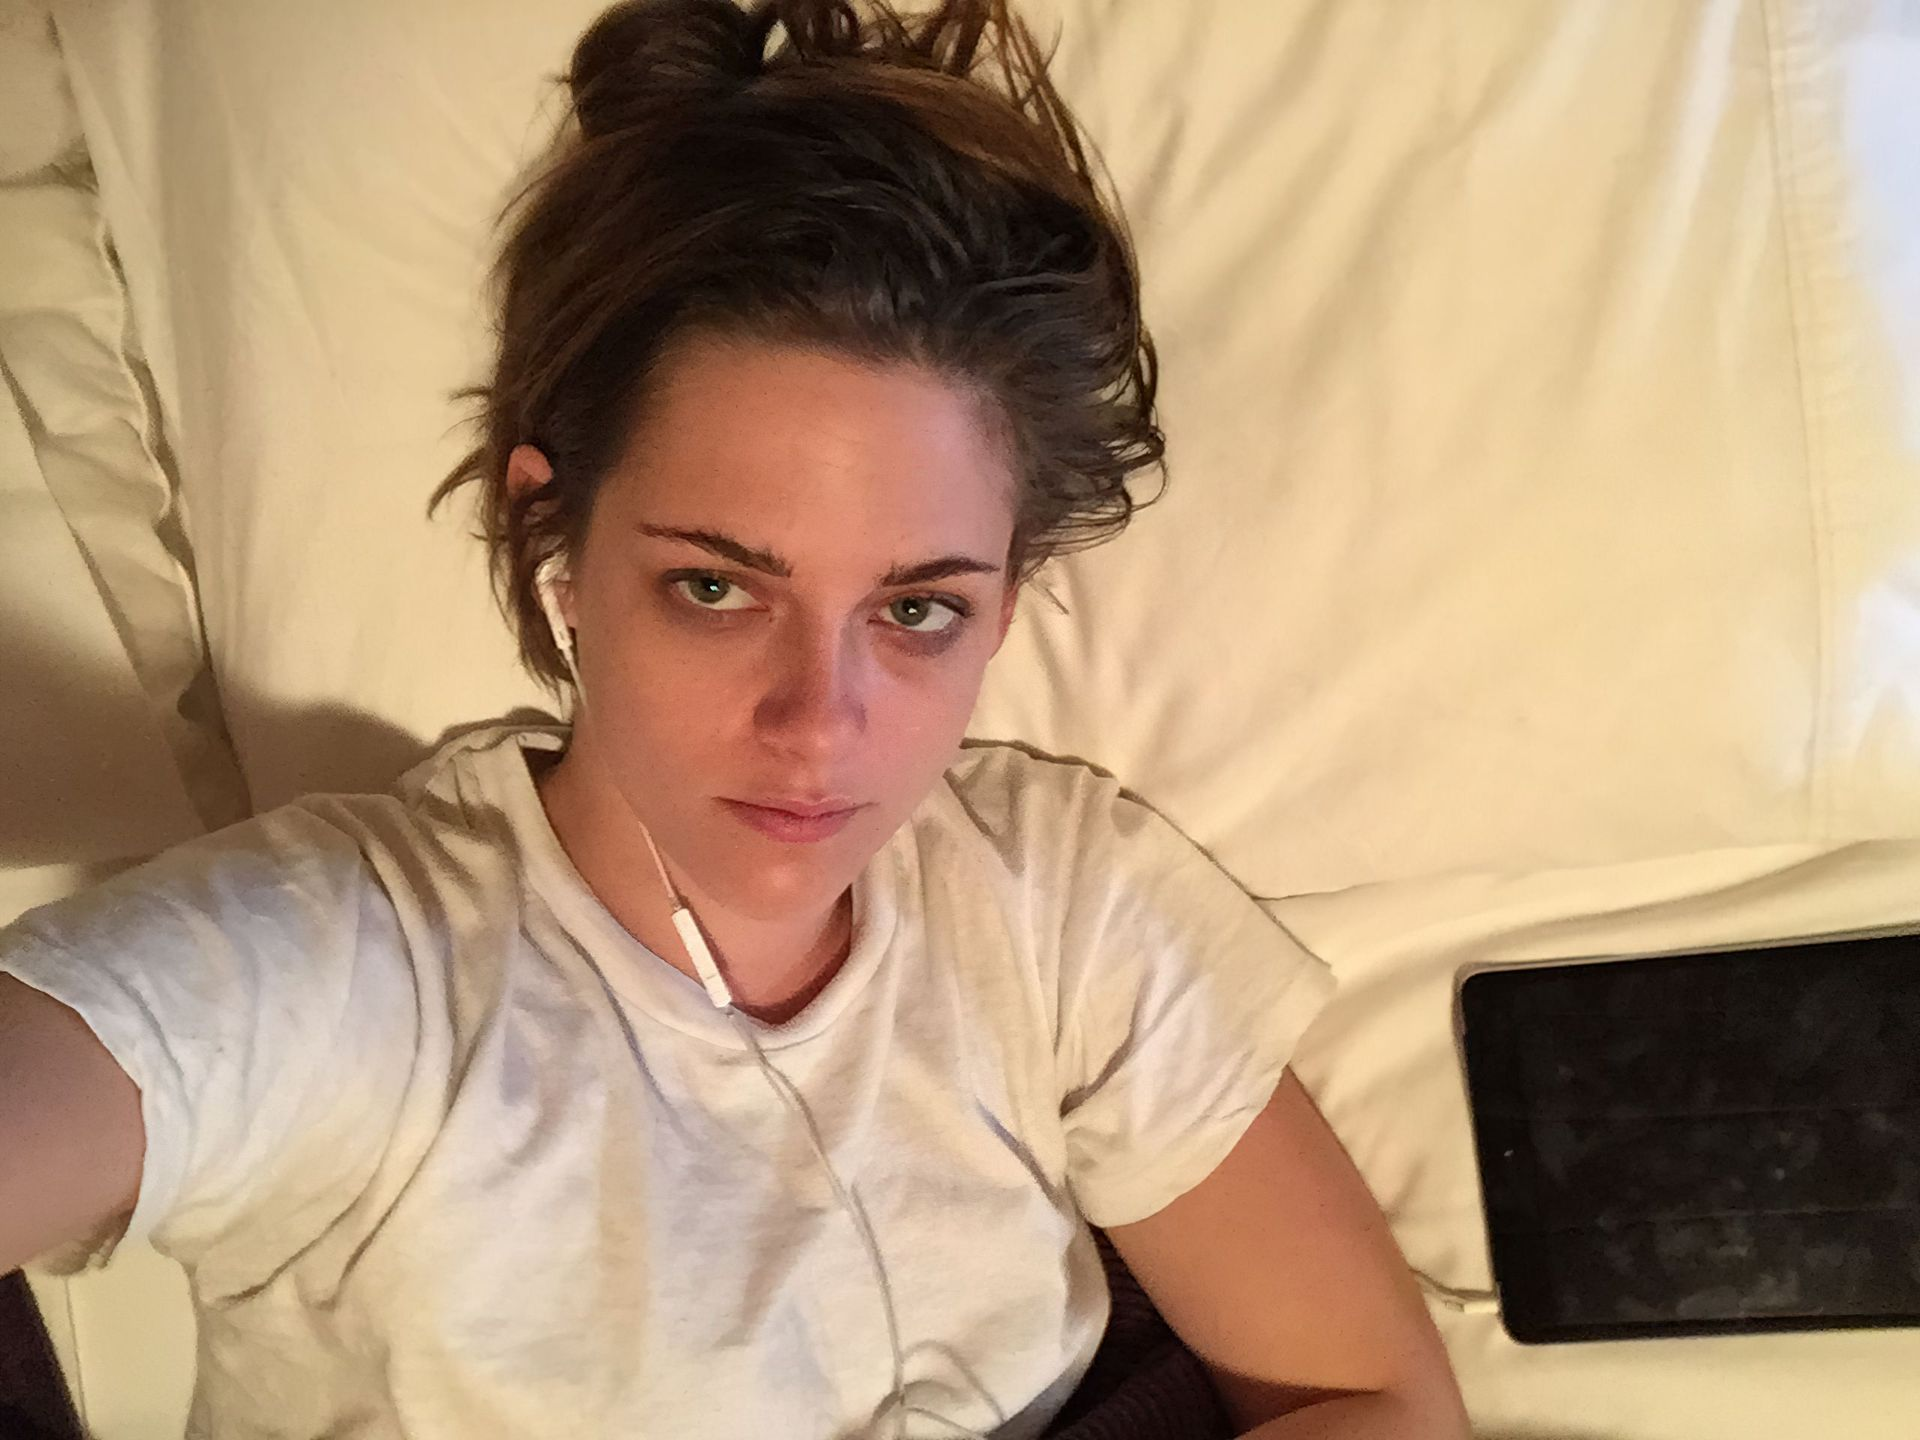 Kristen Stewart Nude Leaked The Fappening Complete Collection 0104